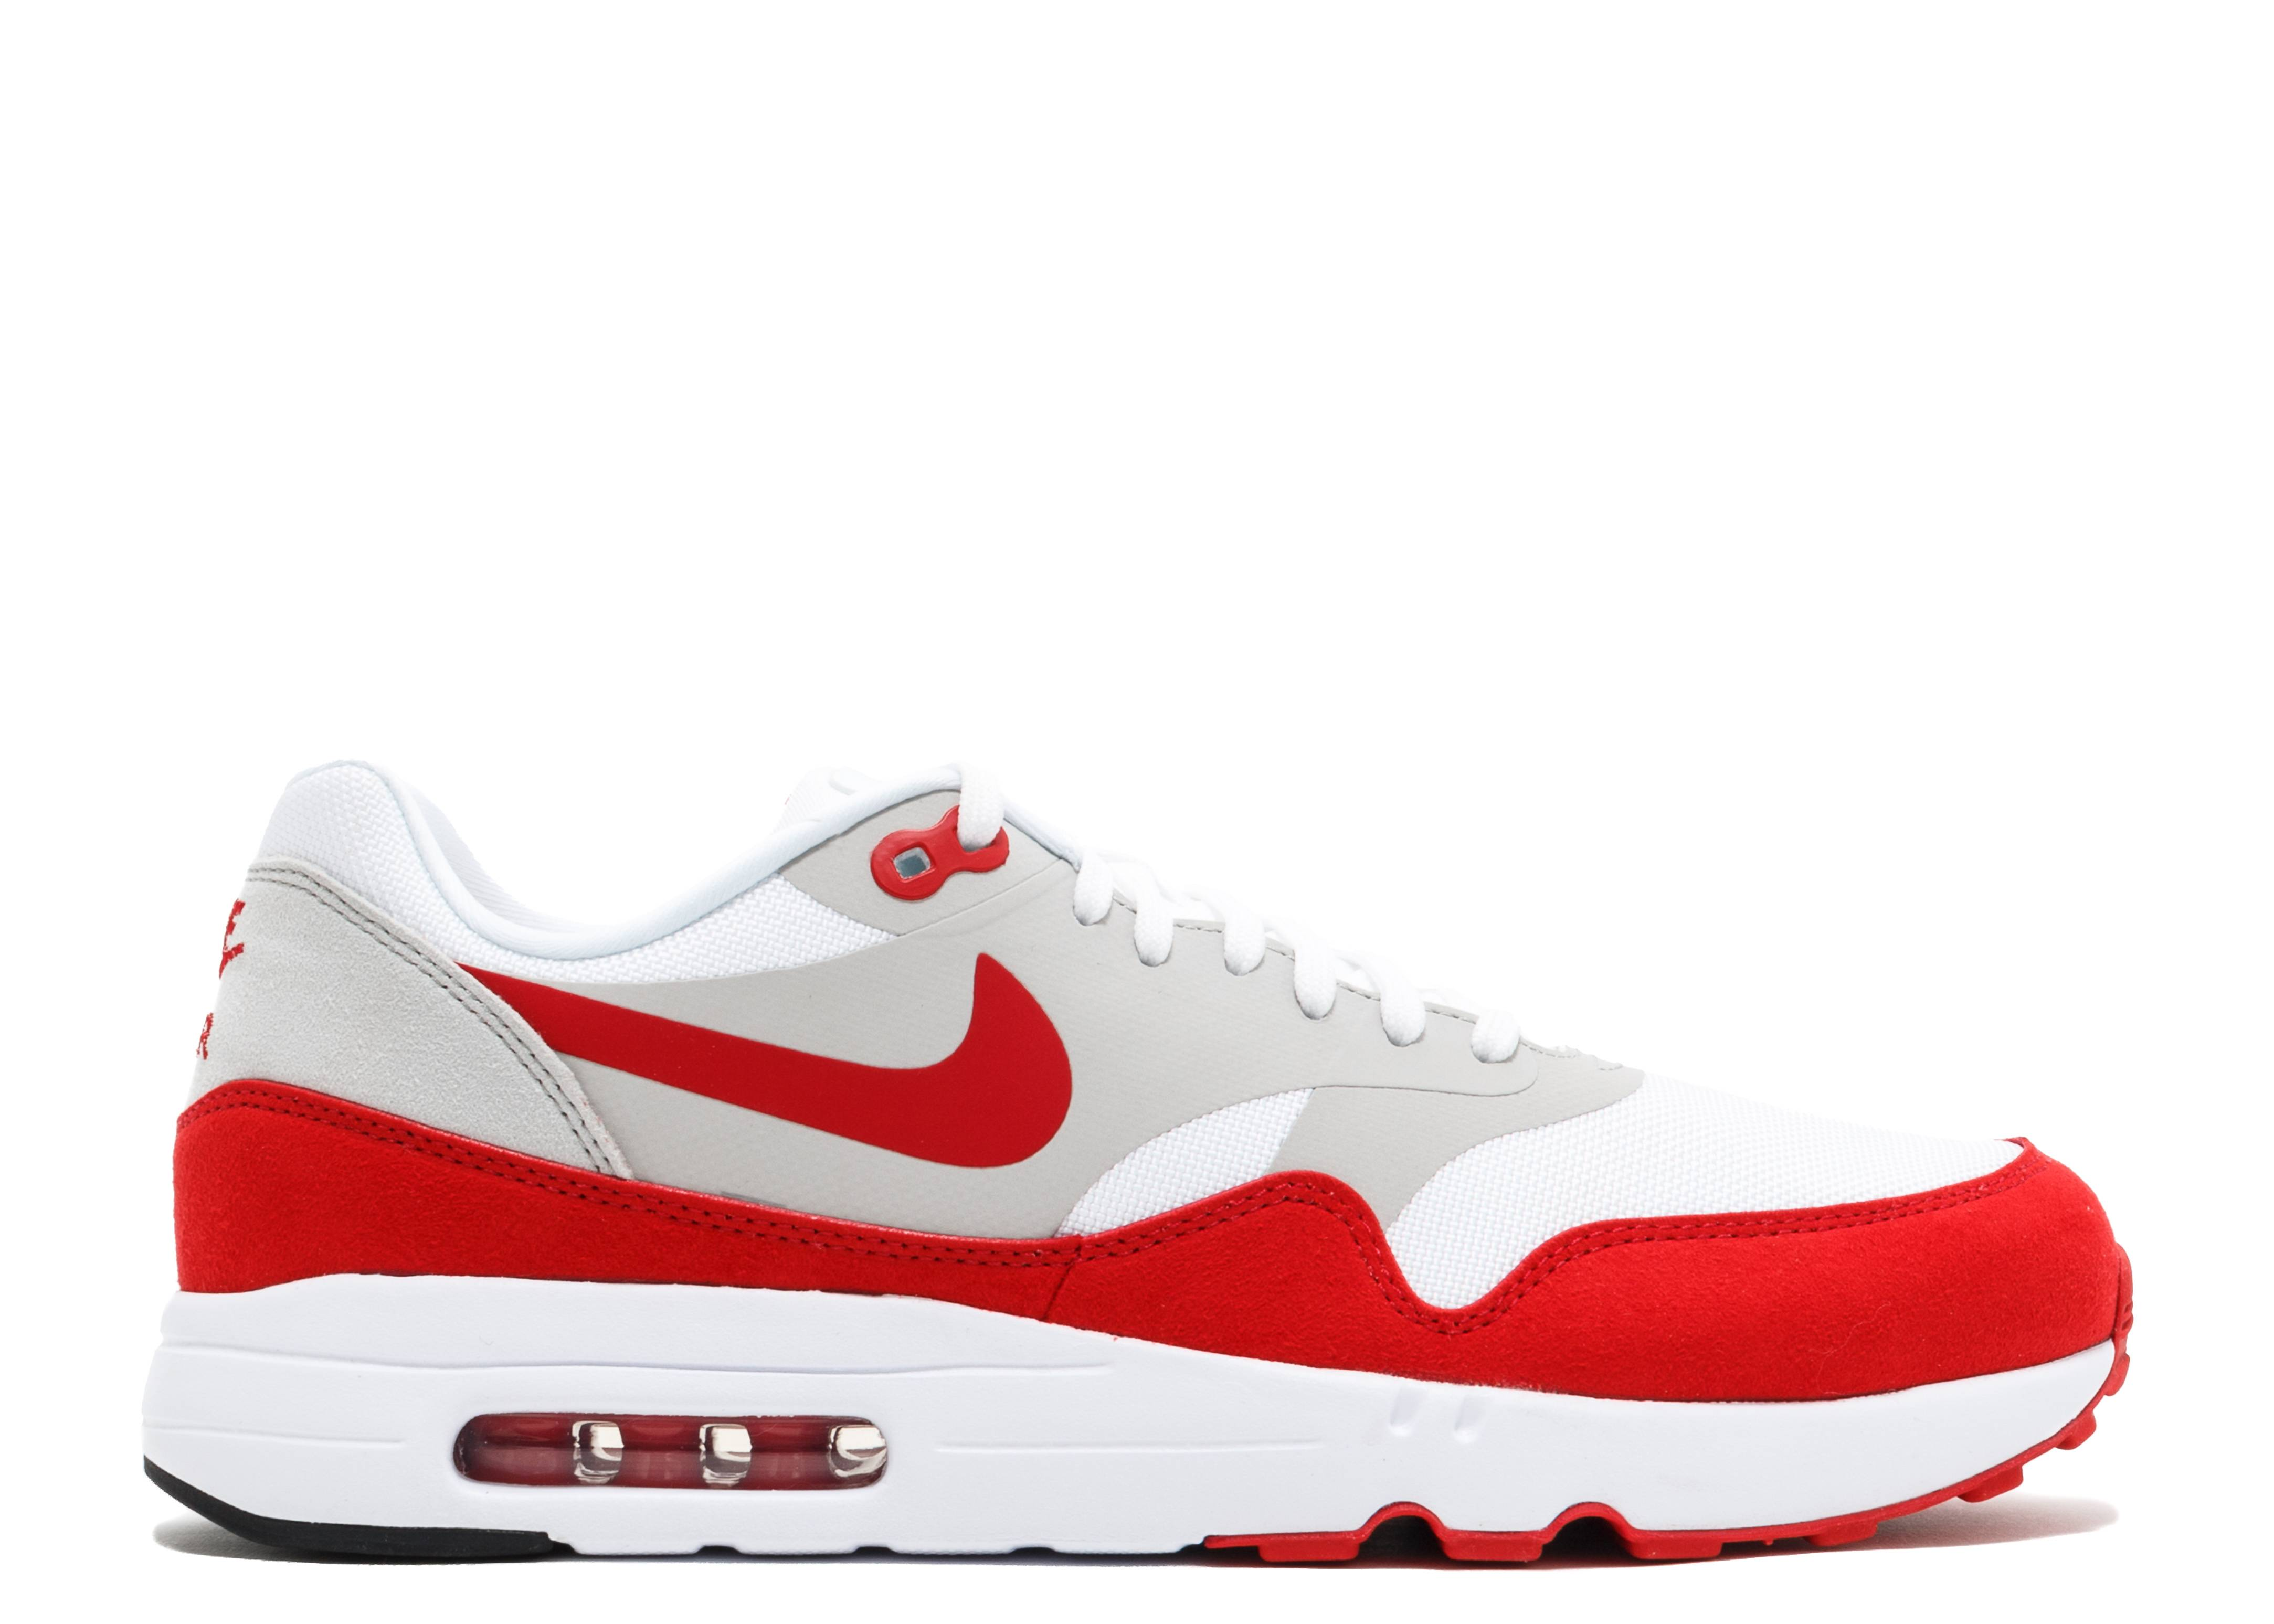 spare Antagonize Wording  Air Max 1 Ultra 2.0 'Air Max Day' - Nike - 908091 100 - white/university red  | Flight Club